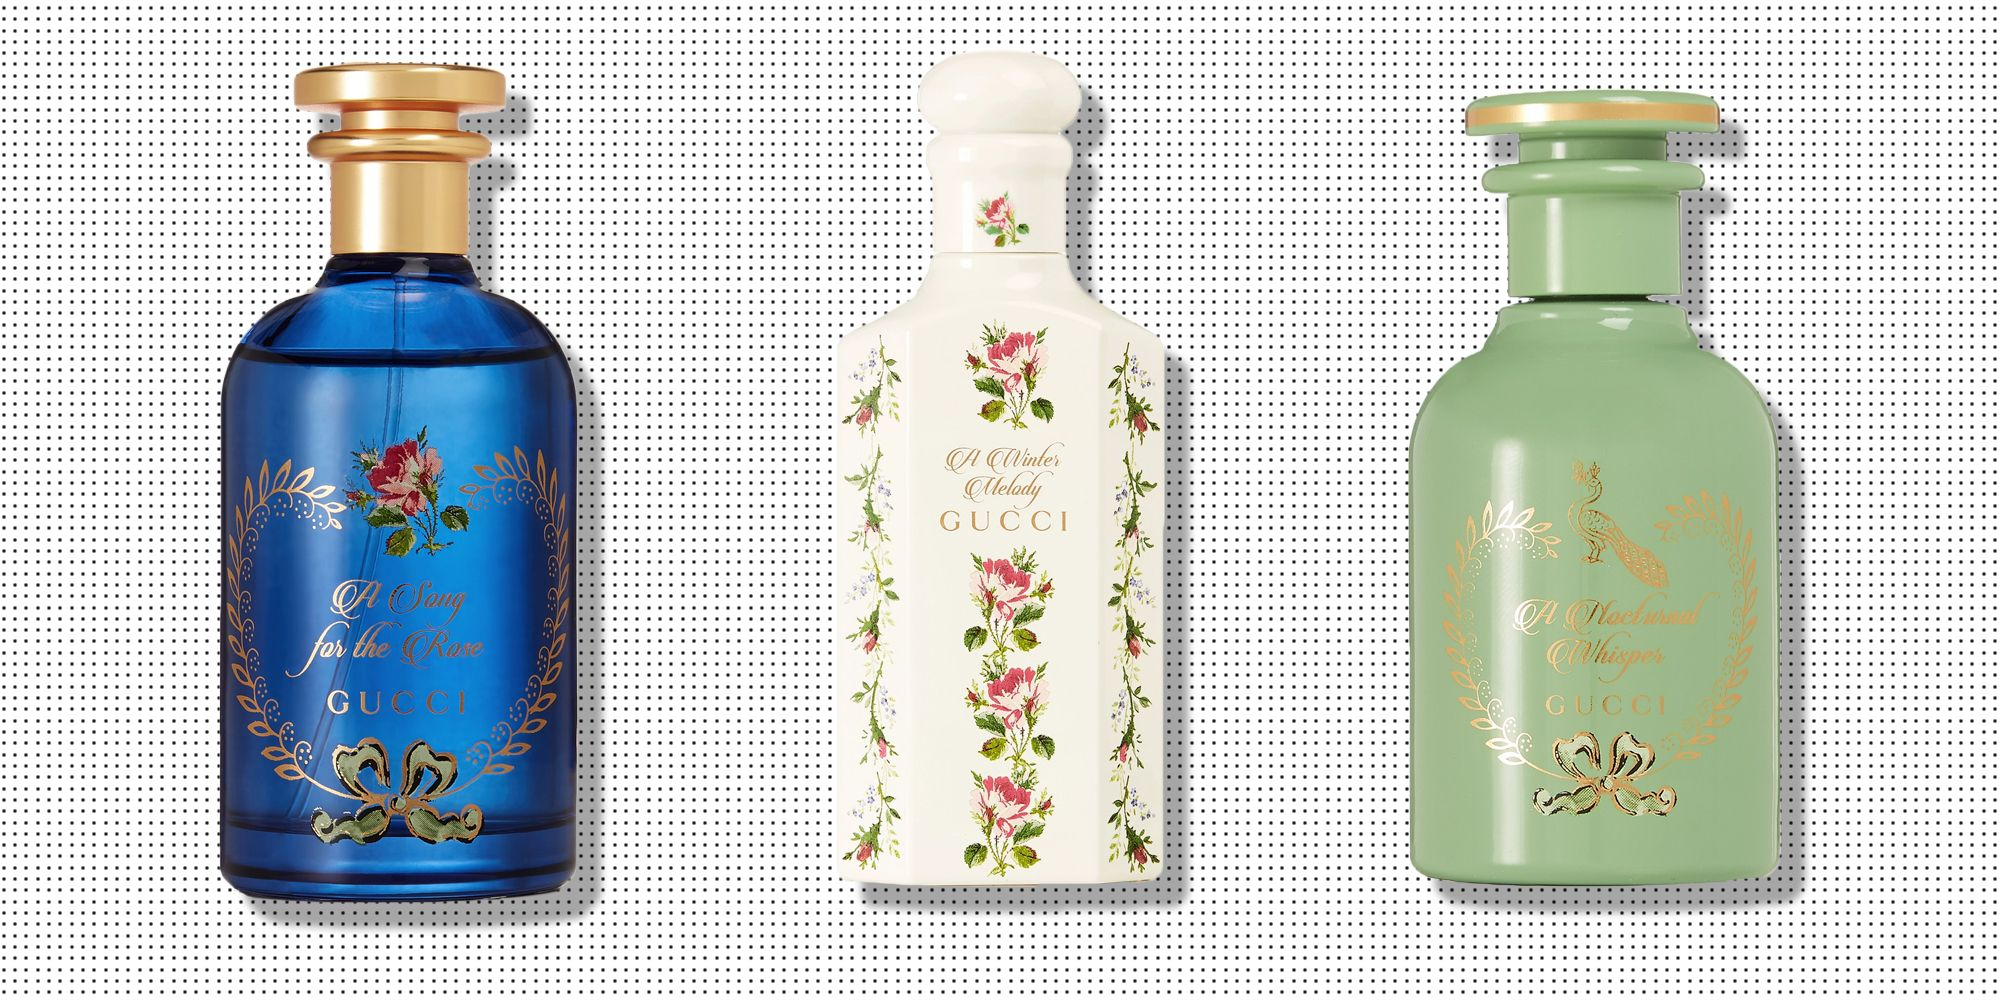 Gucci's Seriously Pretty 'Alchemist's Garden' Perfume Collection Is All You Need This Valentine's Day